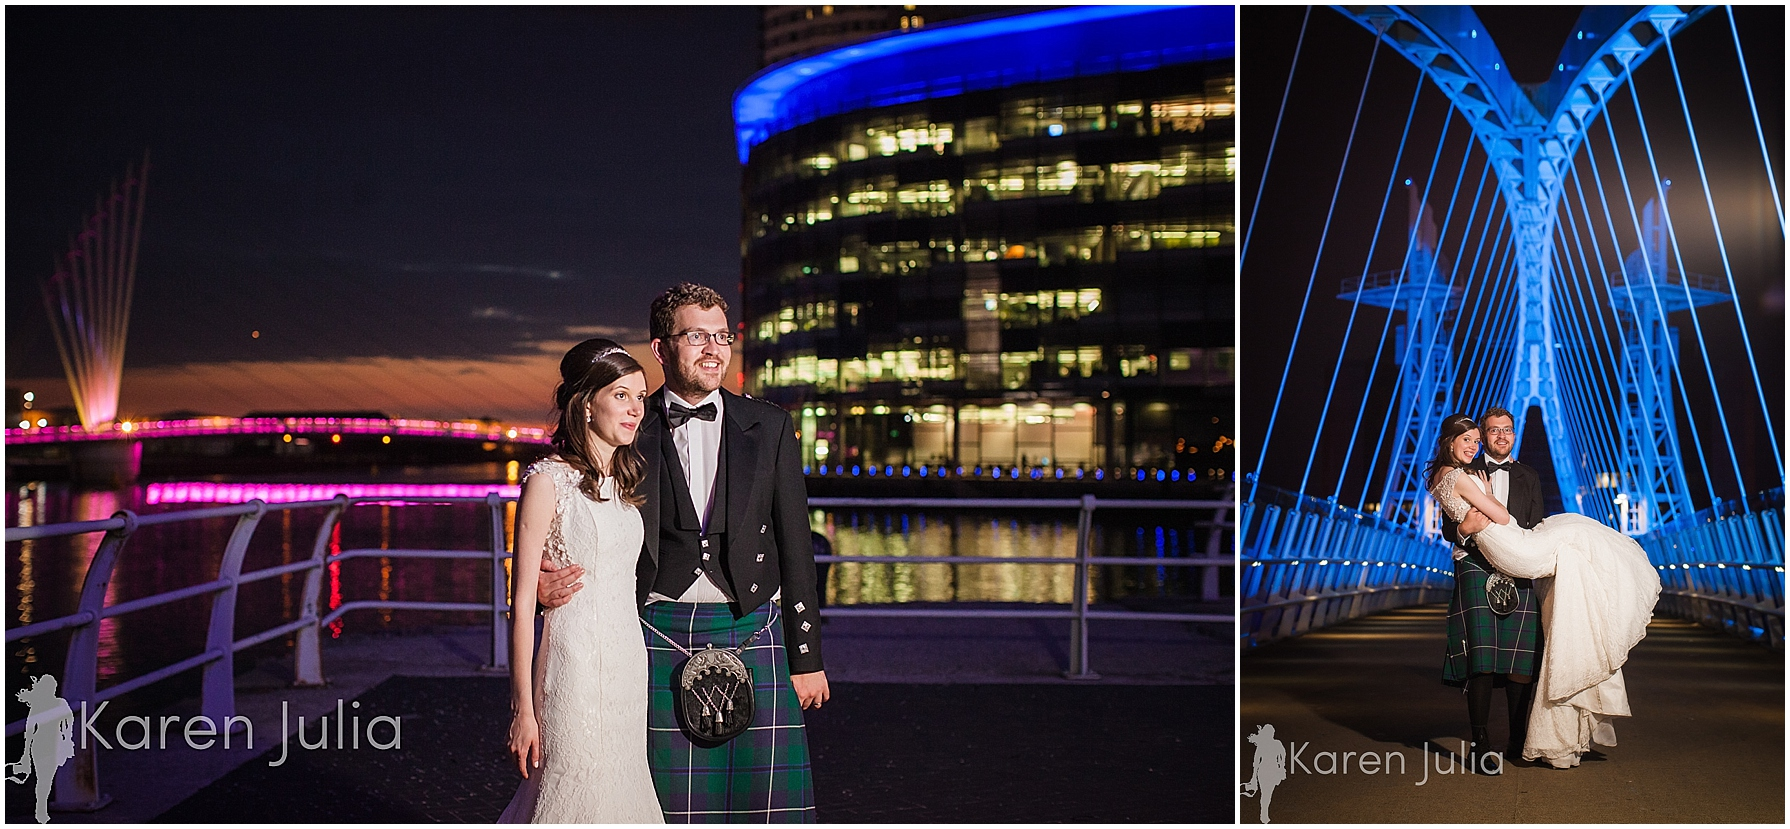 wedding couple portrait at night lowry theatre